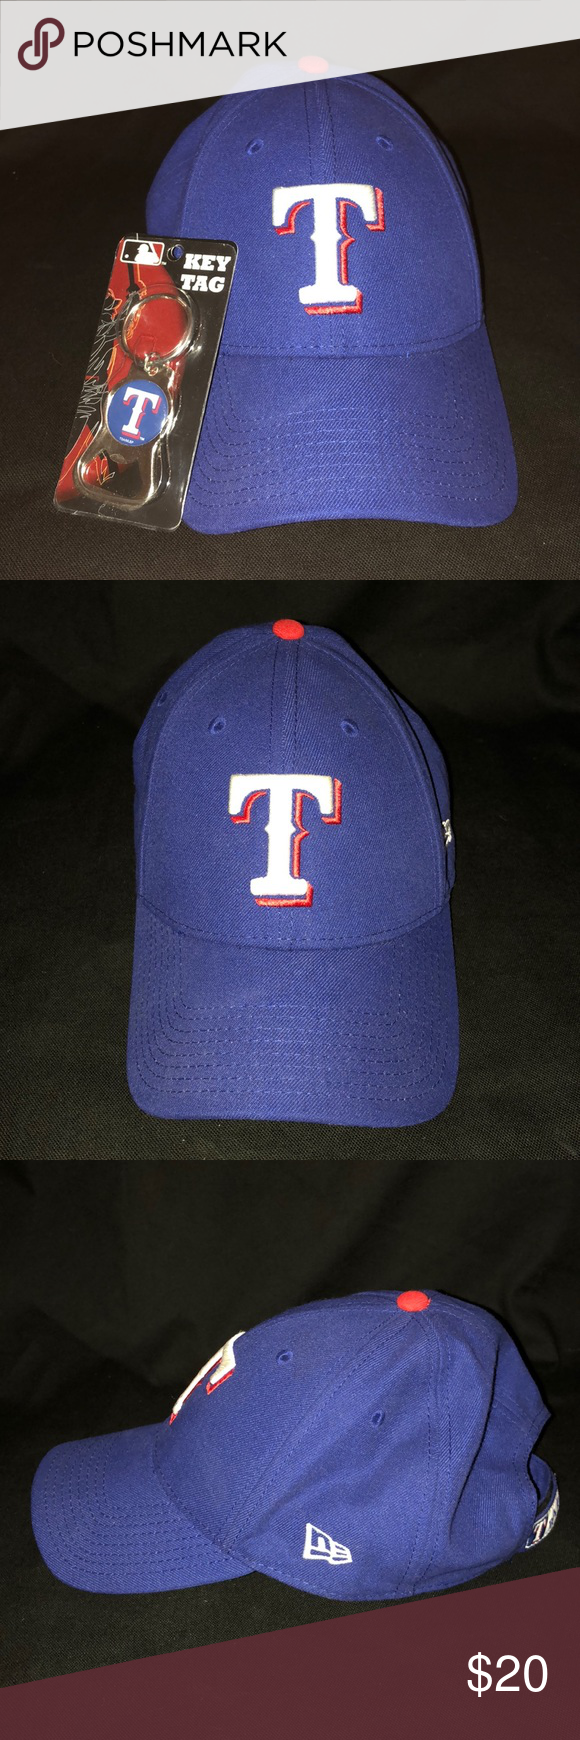 Texas Rangers Baseball Cap   Key Tag Cap in Excellent like-new condition   key tag new New Era Accessories Hats 7afc2629dd08